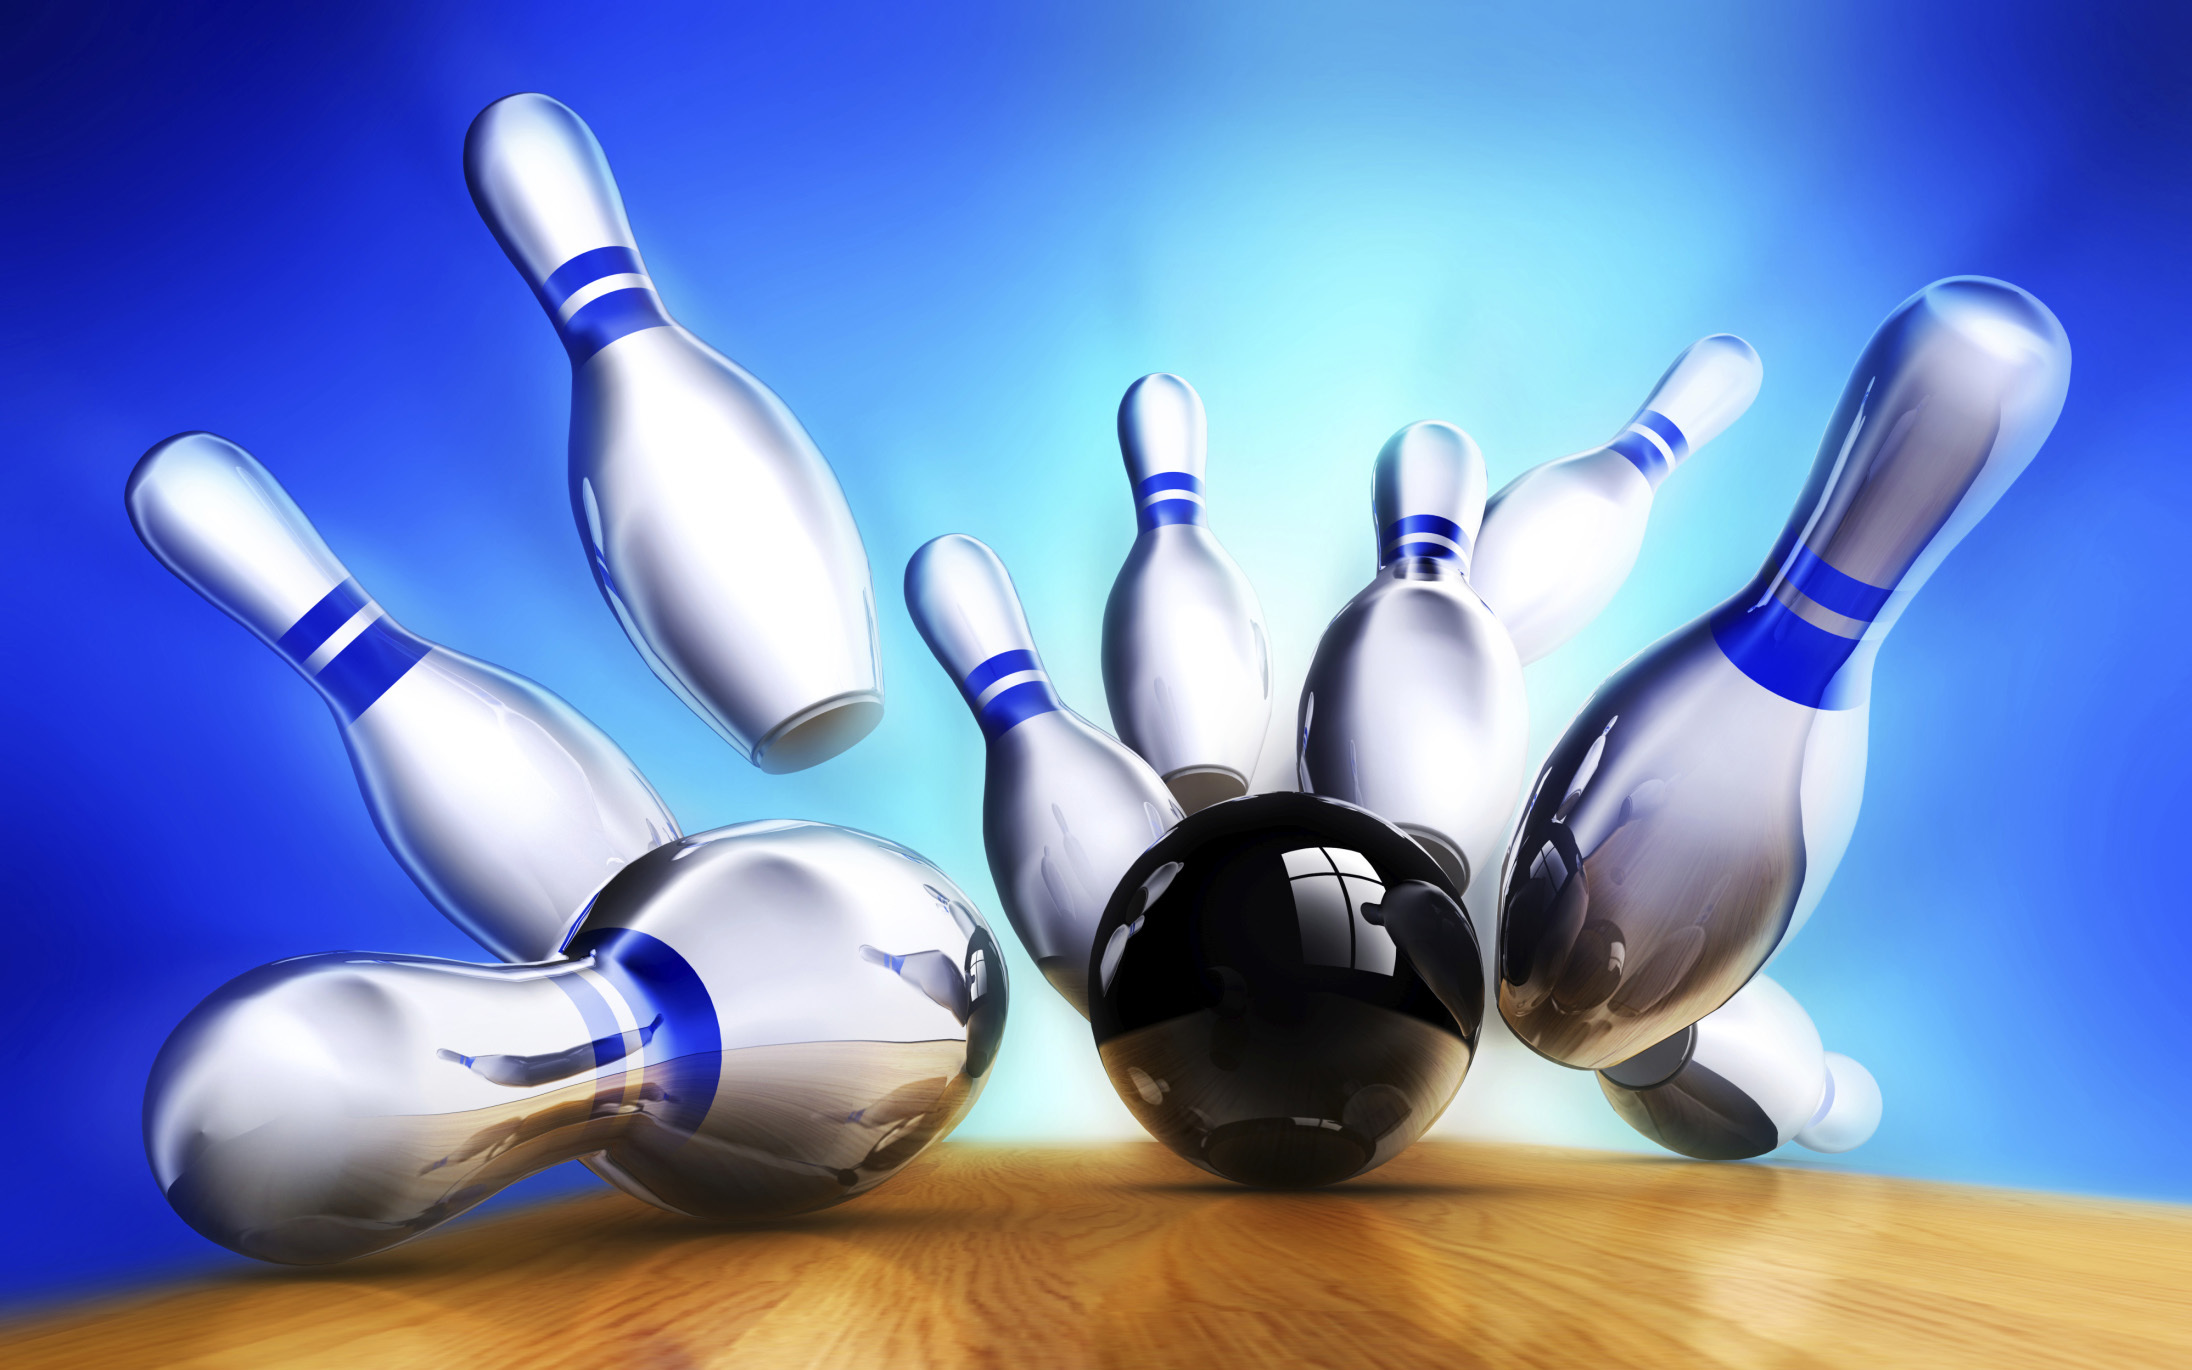 Bowling Wallpapers Images Photos Pictures Backgrounds 2192x1370